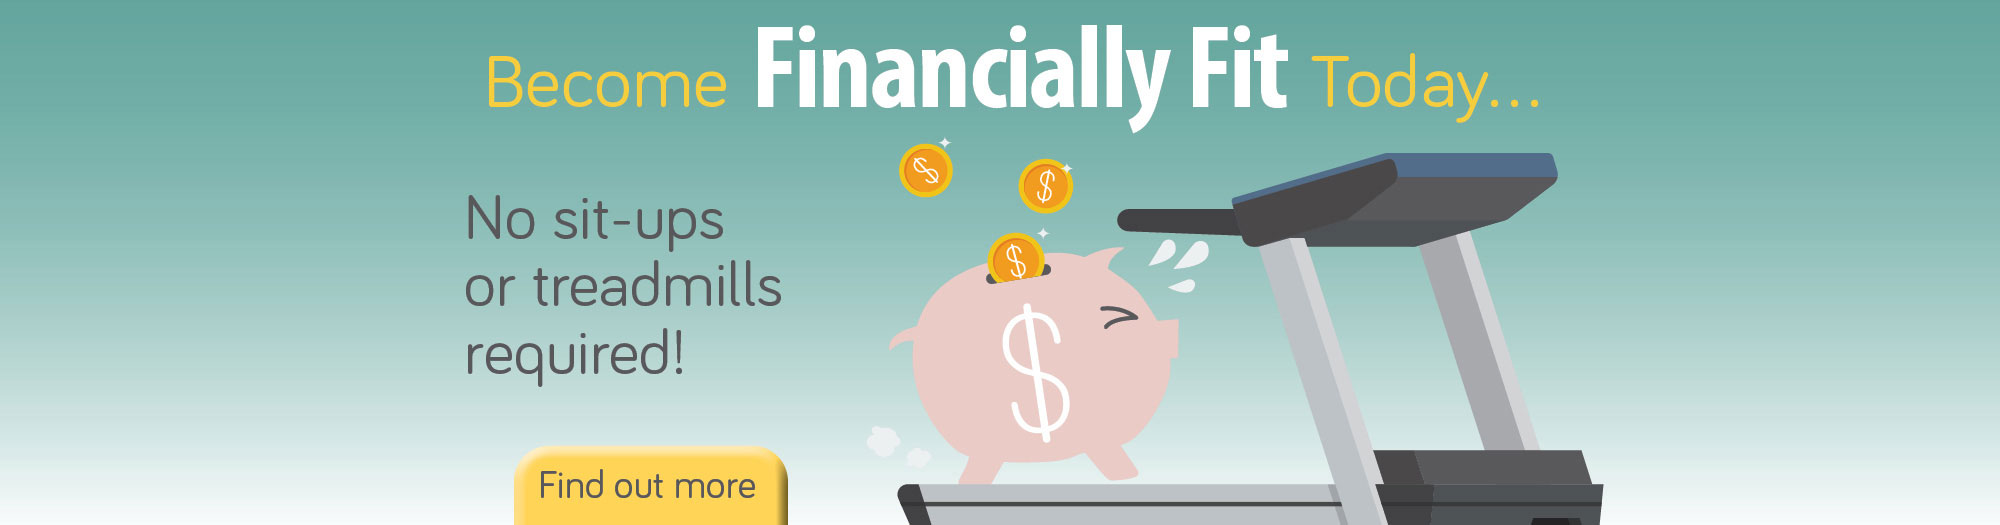 Become financially fit today